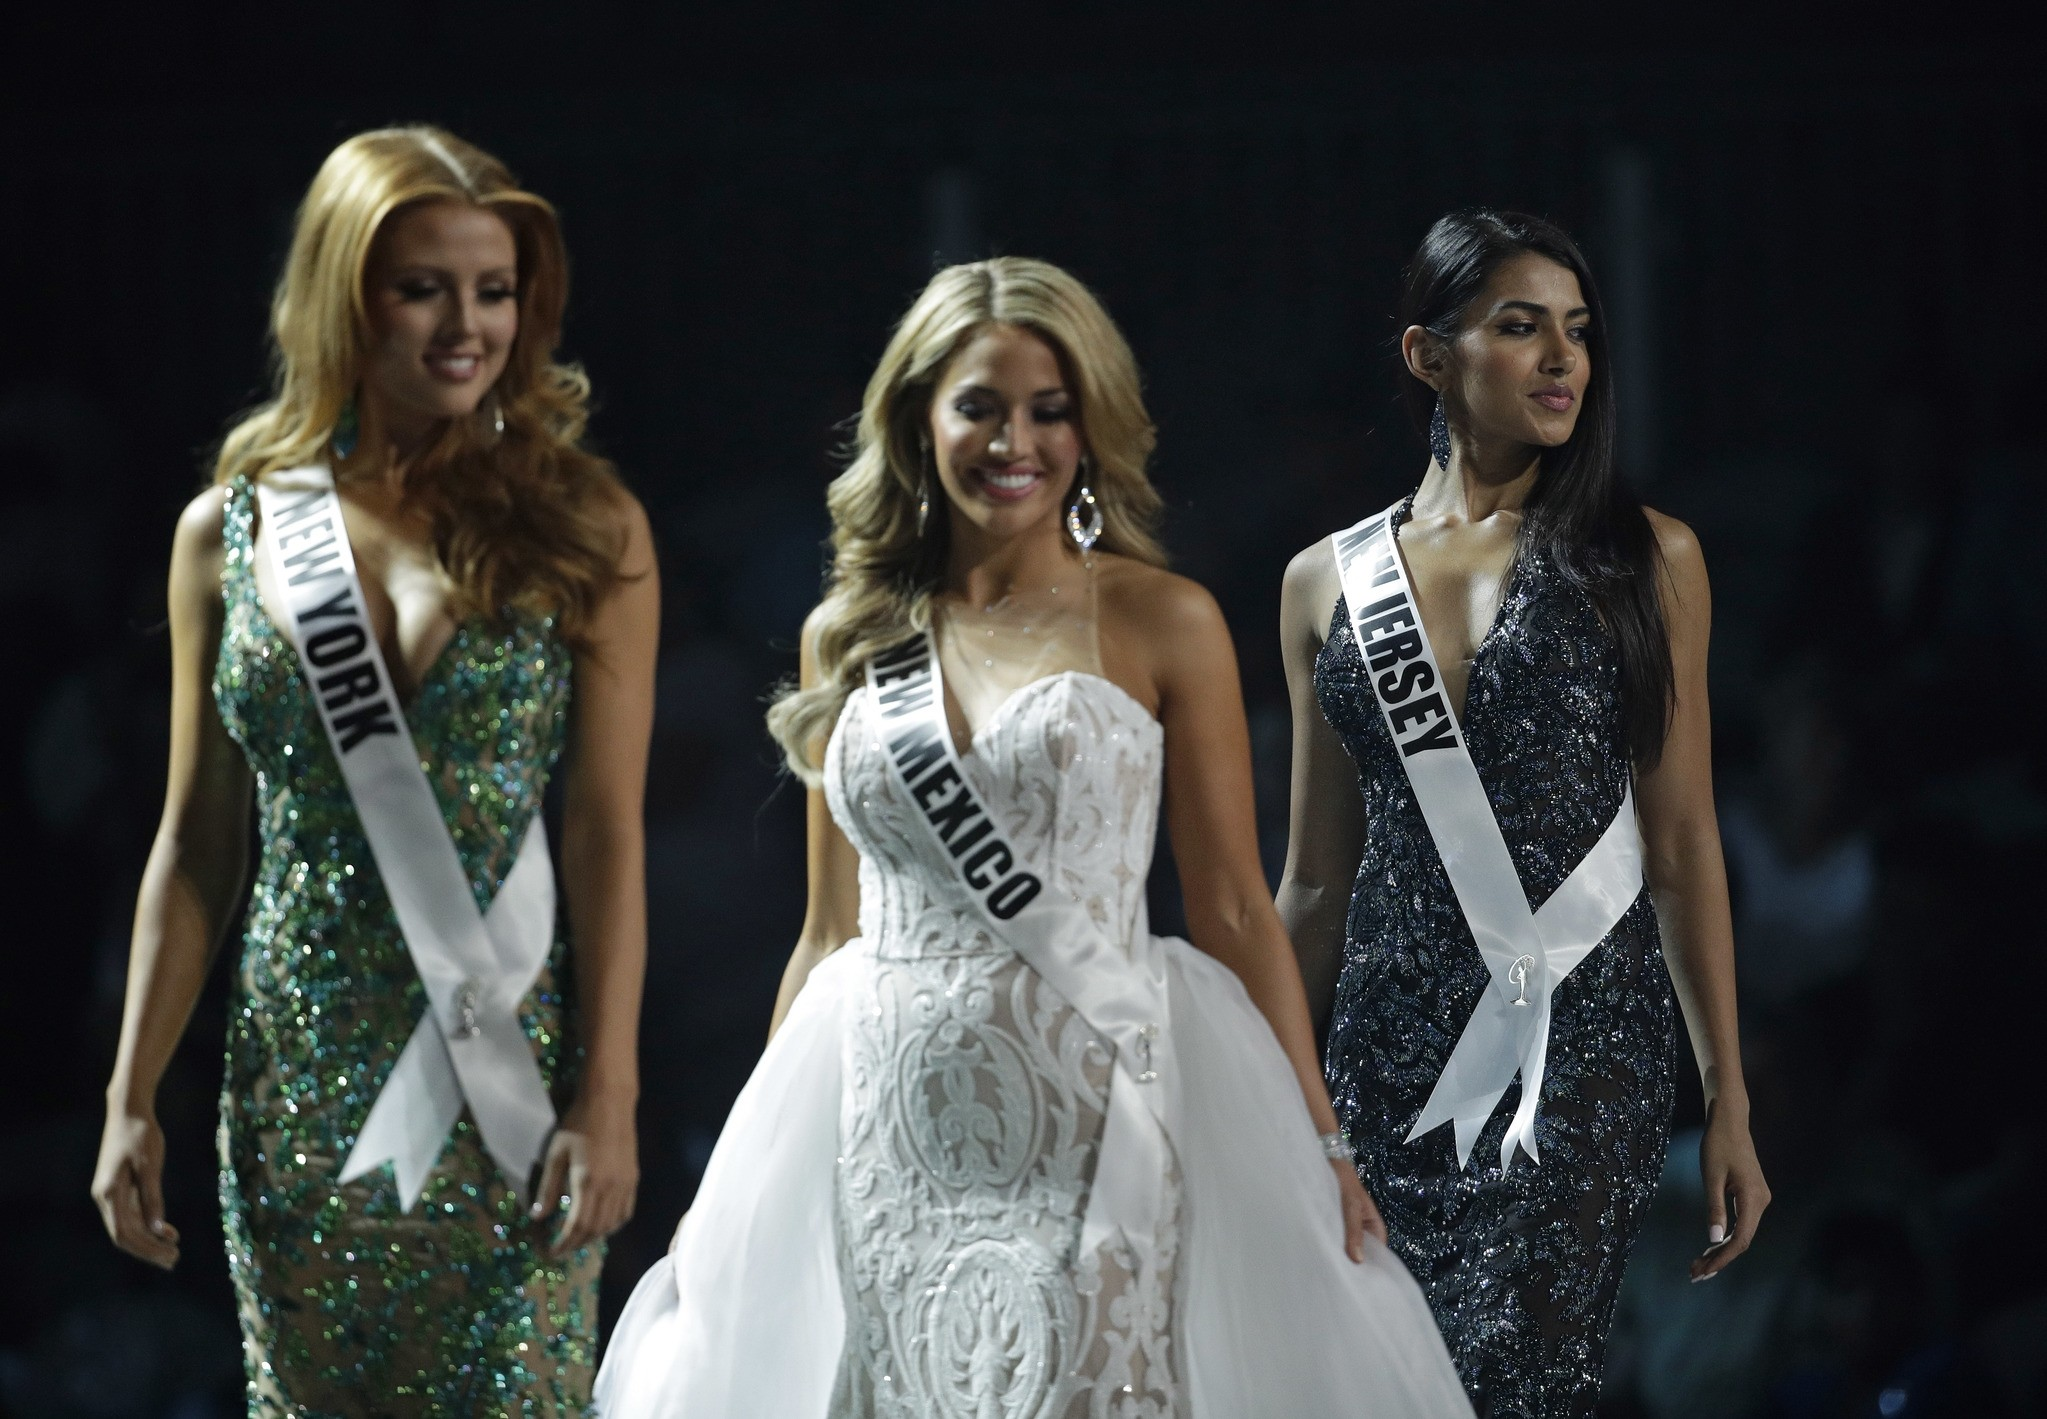 In this May 11, 2017, photo, Miss New Jersey USA Chhavi Verg, right, competes during a preliminary competition for Miss USA in Las Vegas. Very emigrated from India with her parents. (AP Photo)